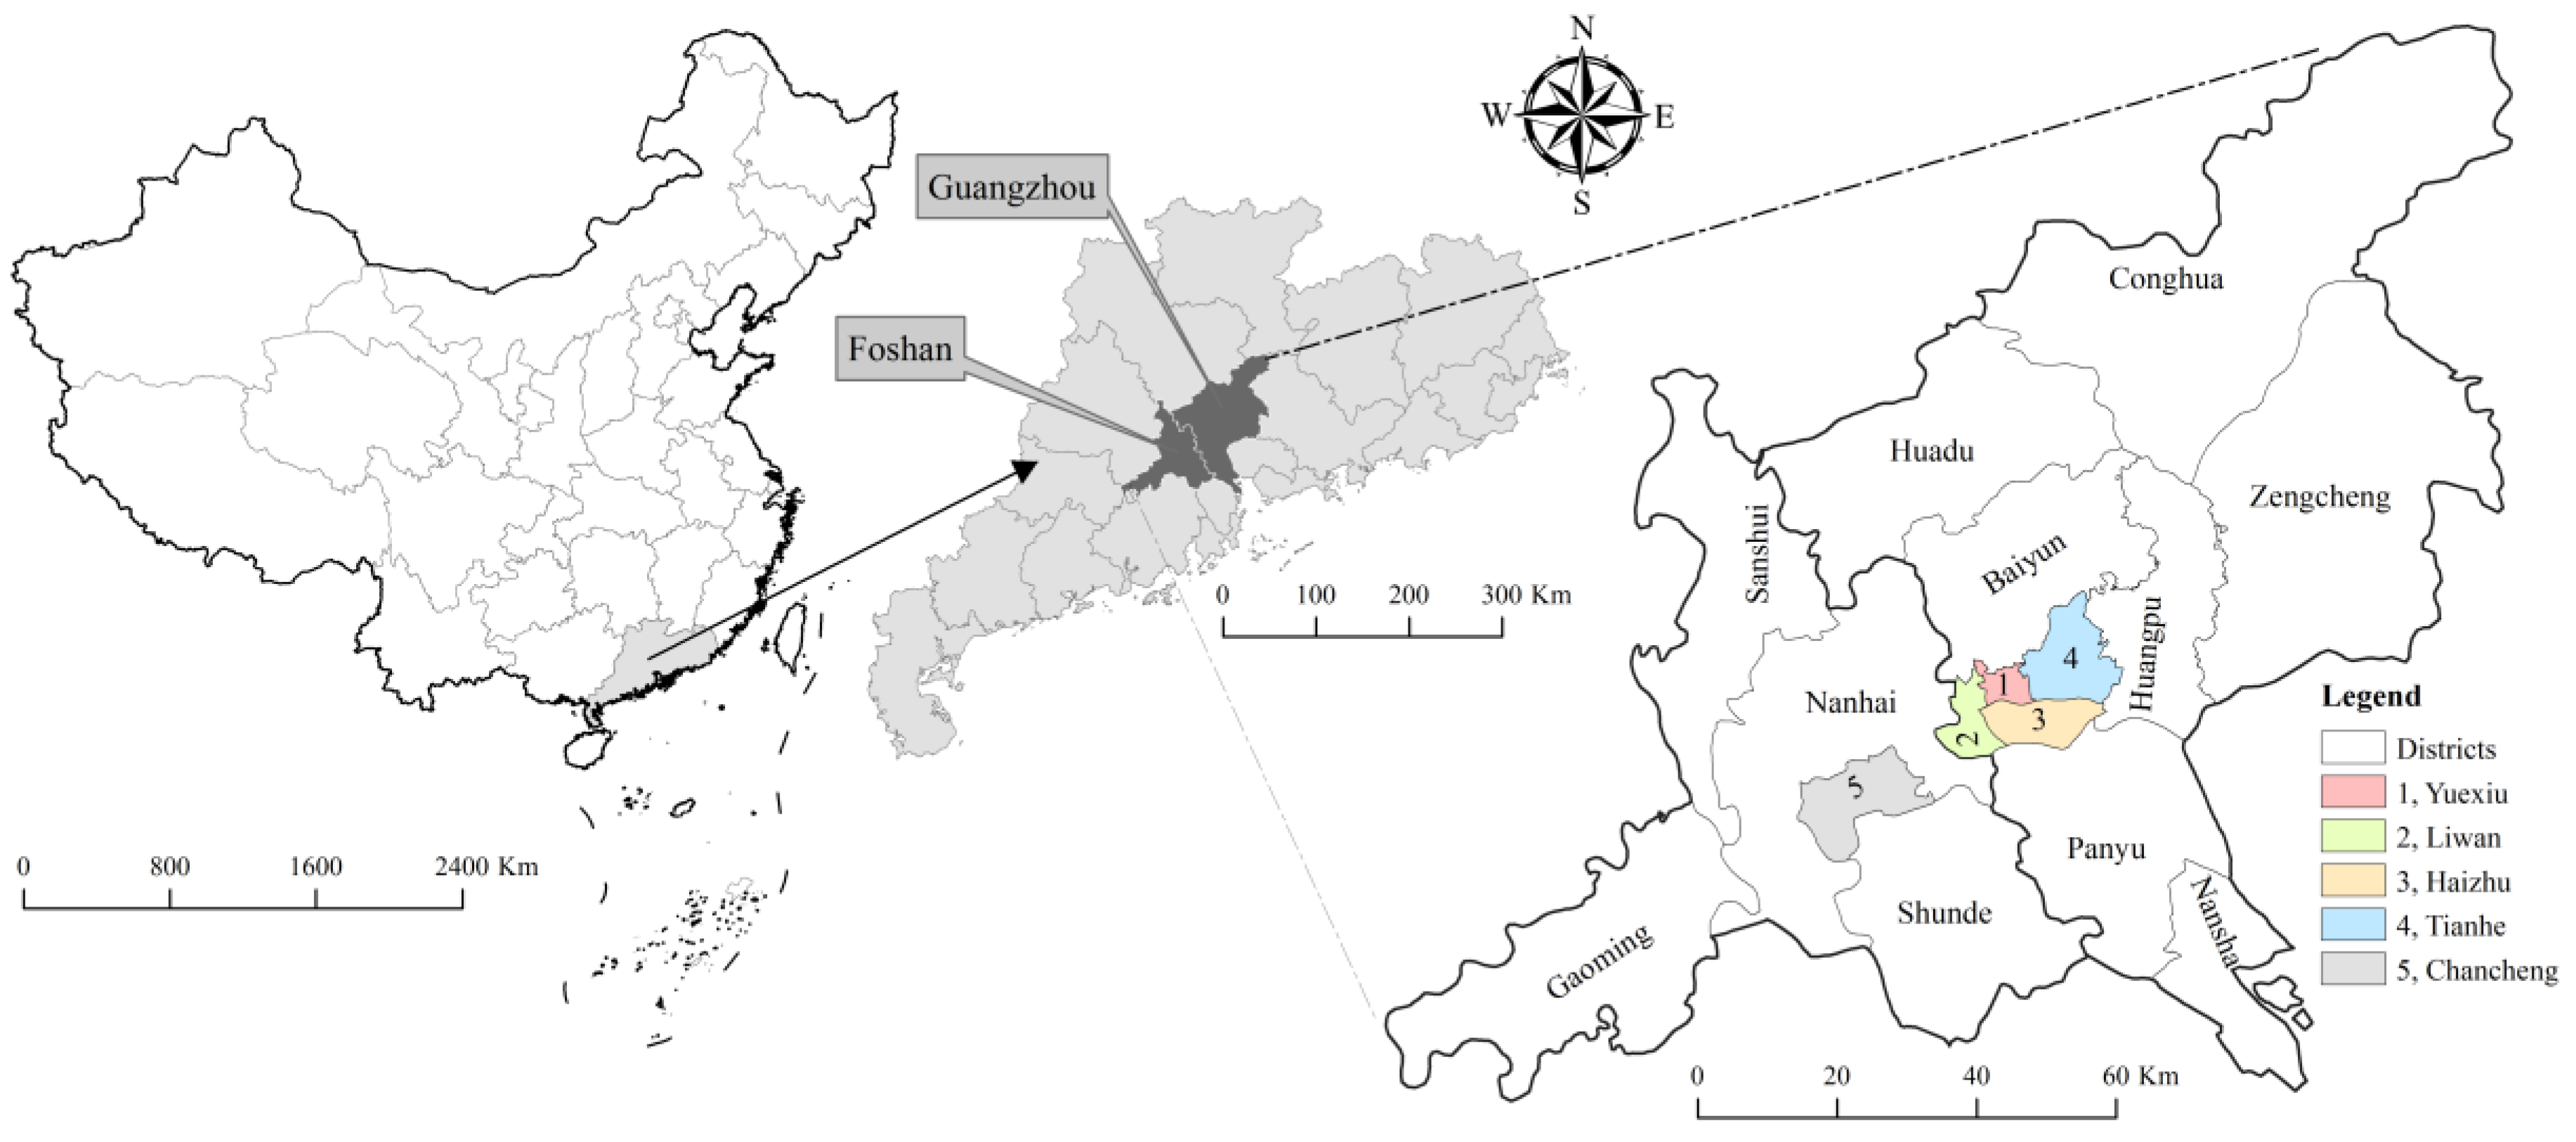 Exploring Determinants of Spatial Variations in the Dengue Fever Epidemic Using Geographically Weighted Regression Model: A Case Study in the Joint Guangzhou-Foshan Area, China, 2014